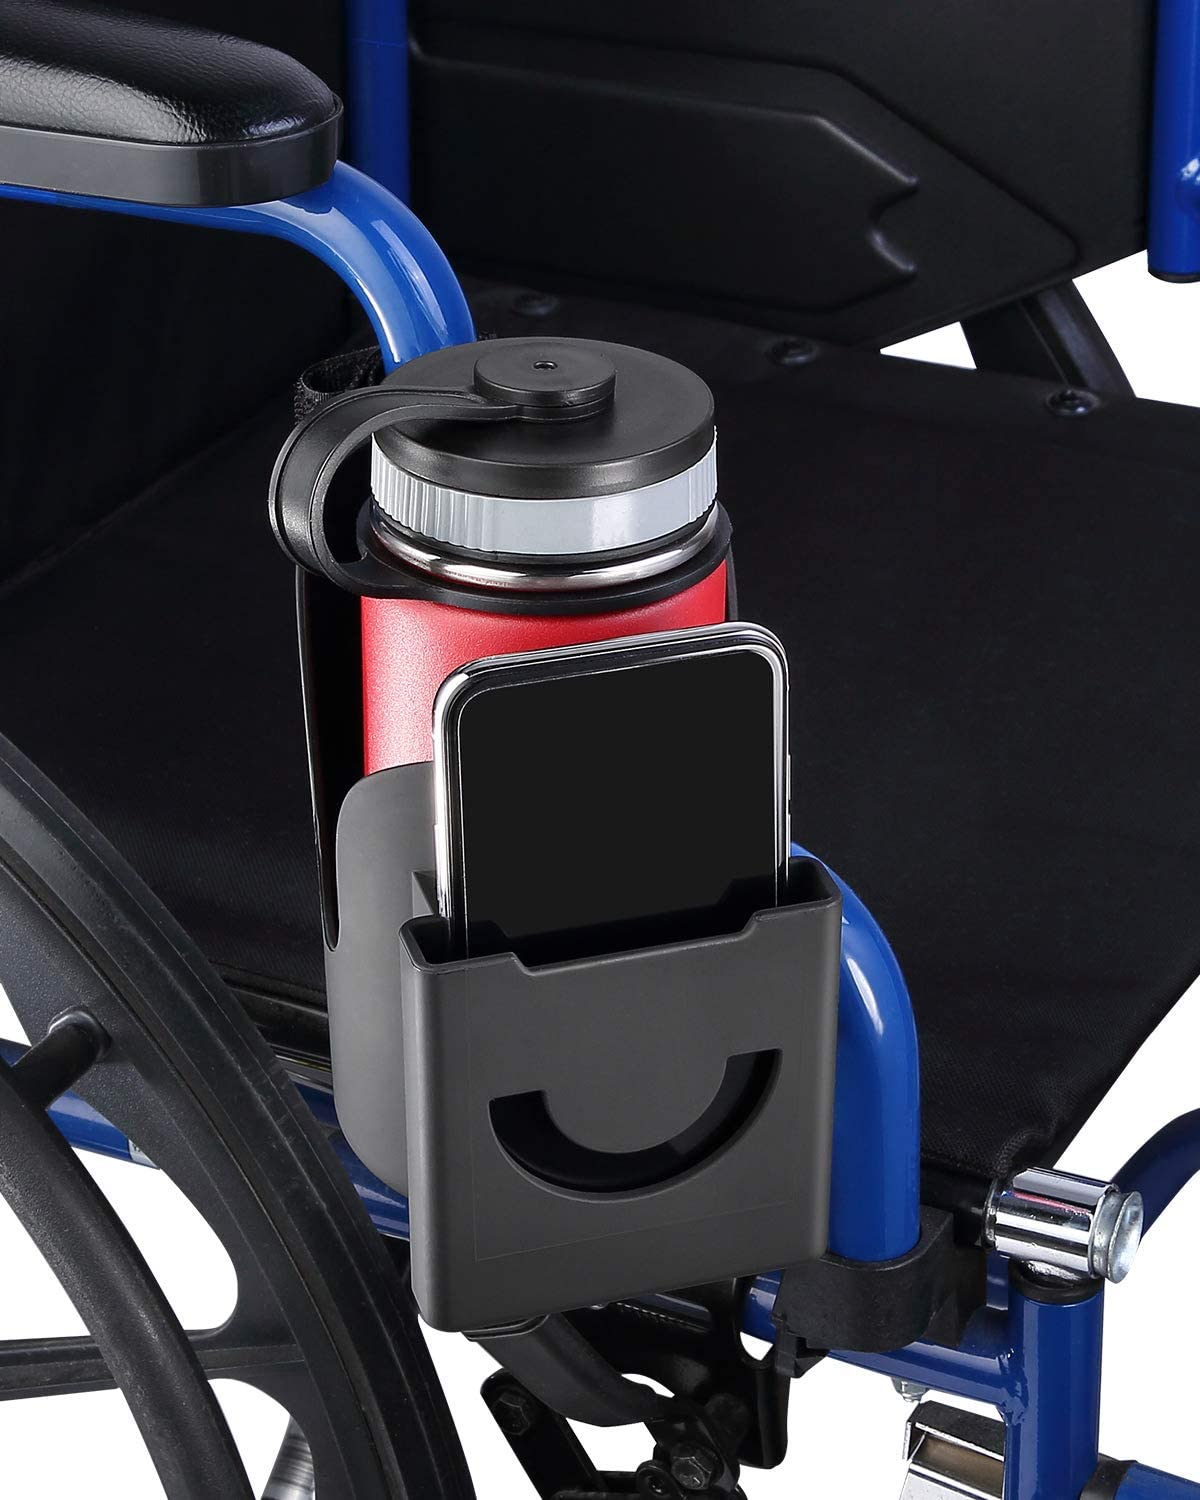 ISSYAUTO Wheelchair Drink Cup Holder, 2 in 1 Large Water Bottle Holder and Phone Bracket with Strap Mount 3MM Thick Cups Holder Universal for Wheelchair, Walker, Rollator, Stroller